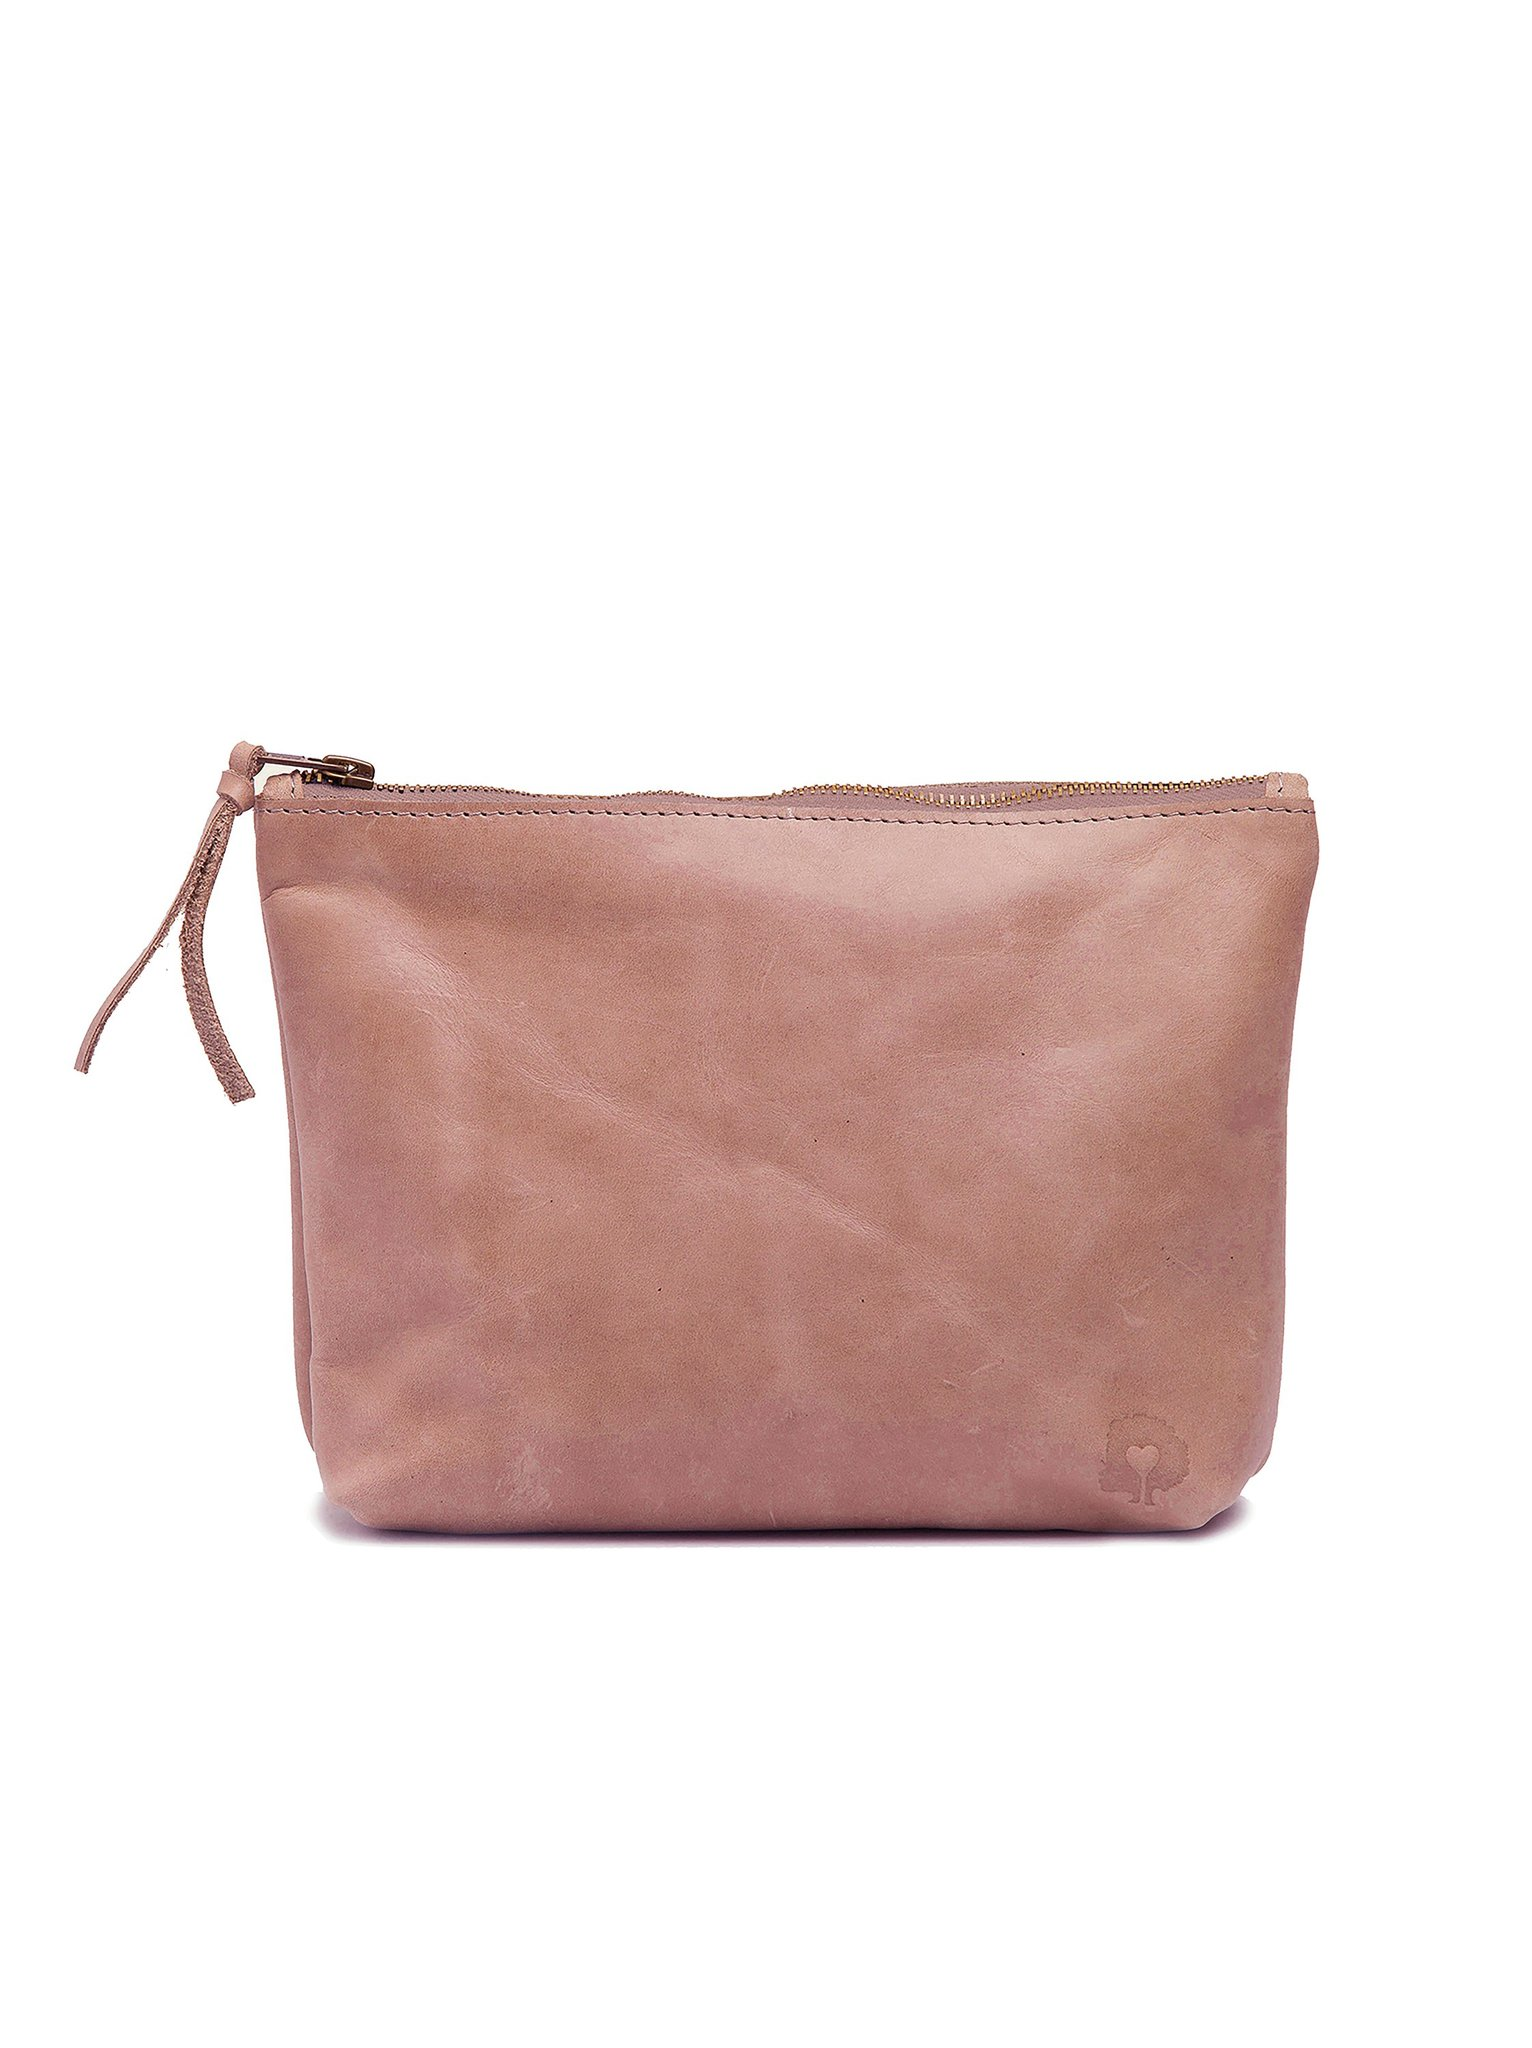 Emnet_Zip_Pouch_Dusty_Rose_2048x2048.jpg